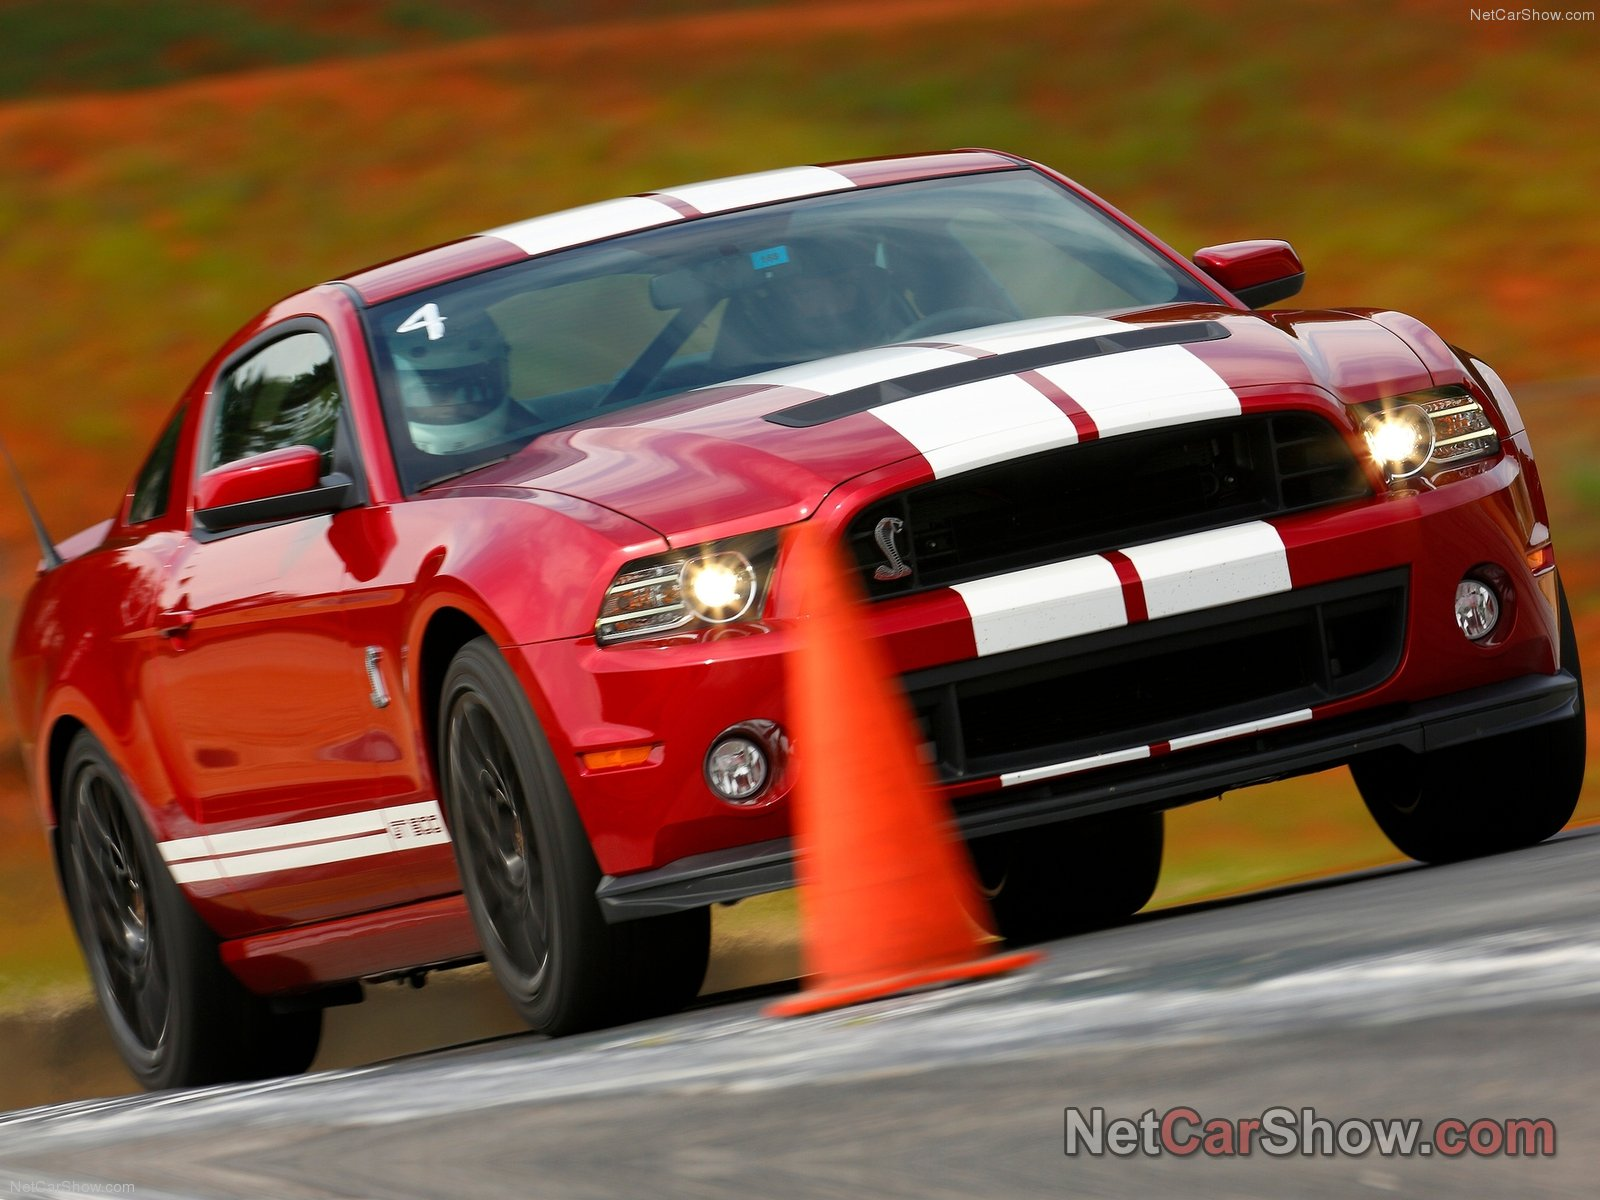 Ford Mustang Shelby GT500 photo 92052